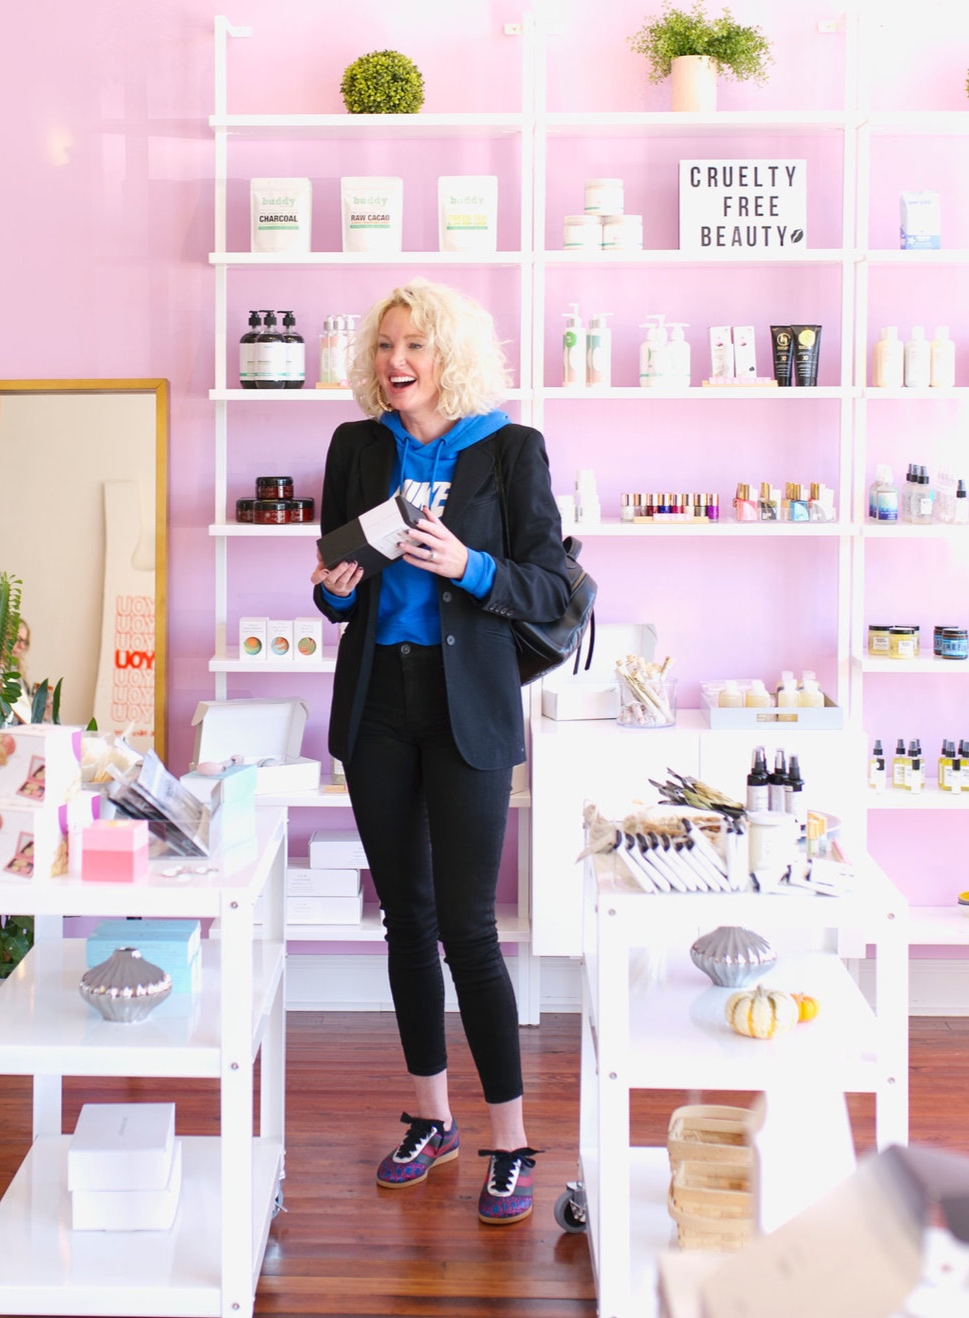 """When I walked into the boutique Mindy and the bridal stylist told me how much they liked my blazer…to which I replied, """"Thanks I just drove off with the gas nozzle still in my car and ripped it out of the pump. Hi! I'm Lyv nice to meet you."""" (And stuck my hand out to shake the stylist hand.) - Mindy died laughing because she just knows at this point that I am a walking disaster. The bridal stylist just blinked at me (I get this expression ALL THE TIME) wondering if I was serious and shook my hand like a dead fish.The stylist walked away and Mindy whispered, """"Did that really happen?!"""". And I said, """"YES DAMNIT!! Where is the bathroom because if there is any static in these dresses my gas covered hands are gonna blow off and I'll be holding your wedding flowers with metal hooks!!!!"""".Pretty sure Mindy sure walked away because she could no longer look me in the face and I don't blame her. She probably hid in a rack of dresses wishing we weren't friends!!! HAHA! Oh my god, I am dying as I type this. At least I was wearing my black blazer."""